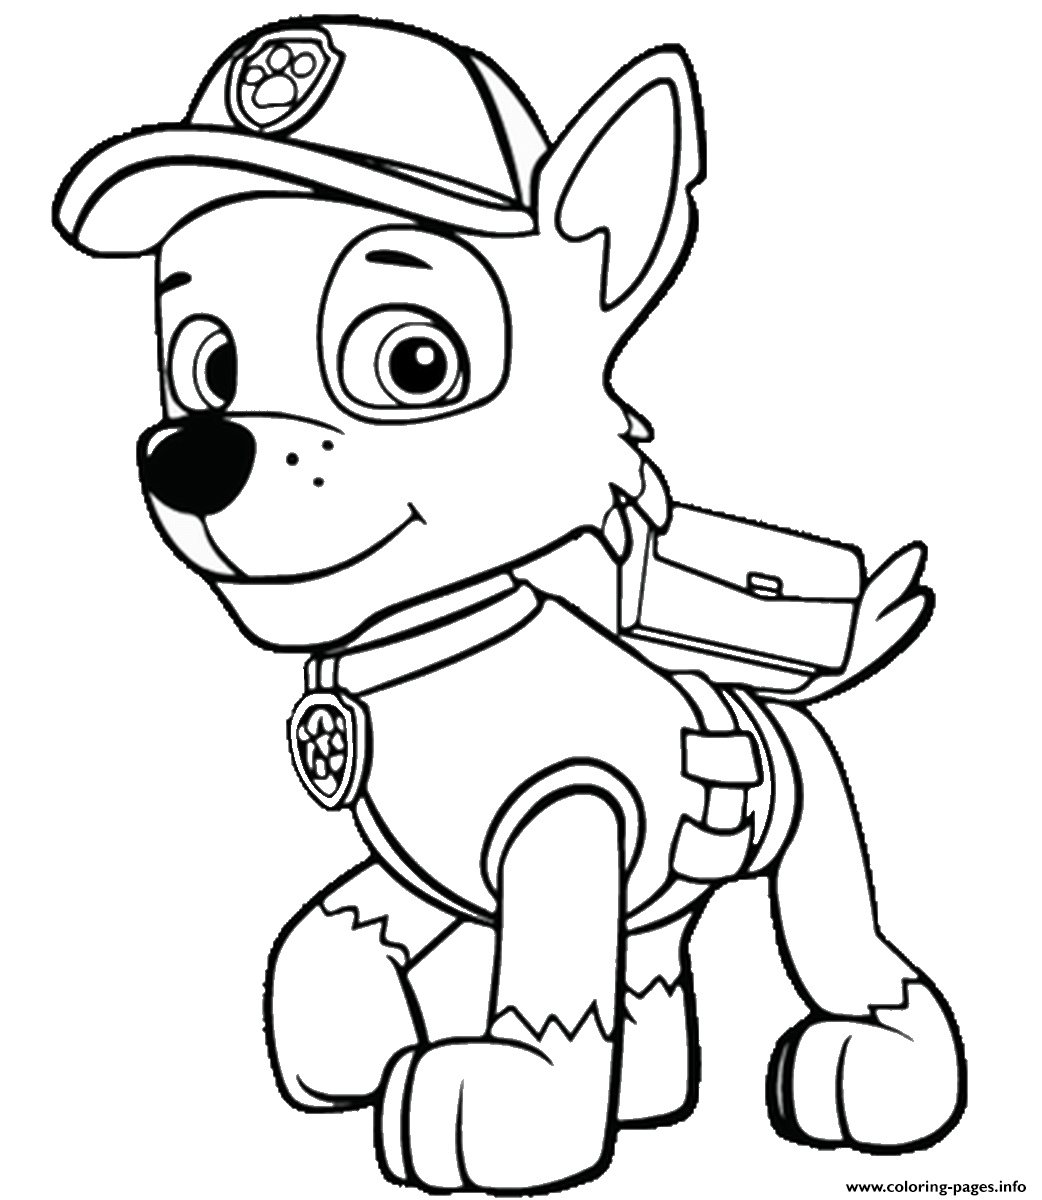 View Source Image Paw Patrol Coloring Pages Paw Patrol Coloring Paw Patrol Printables